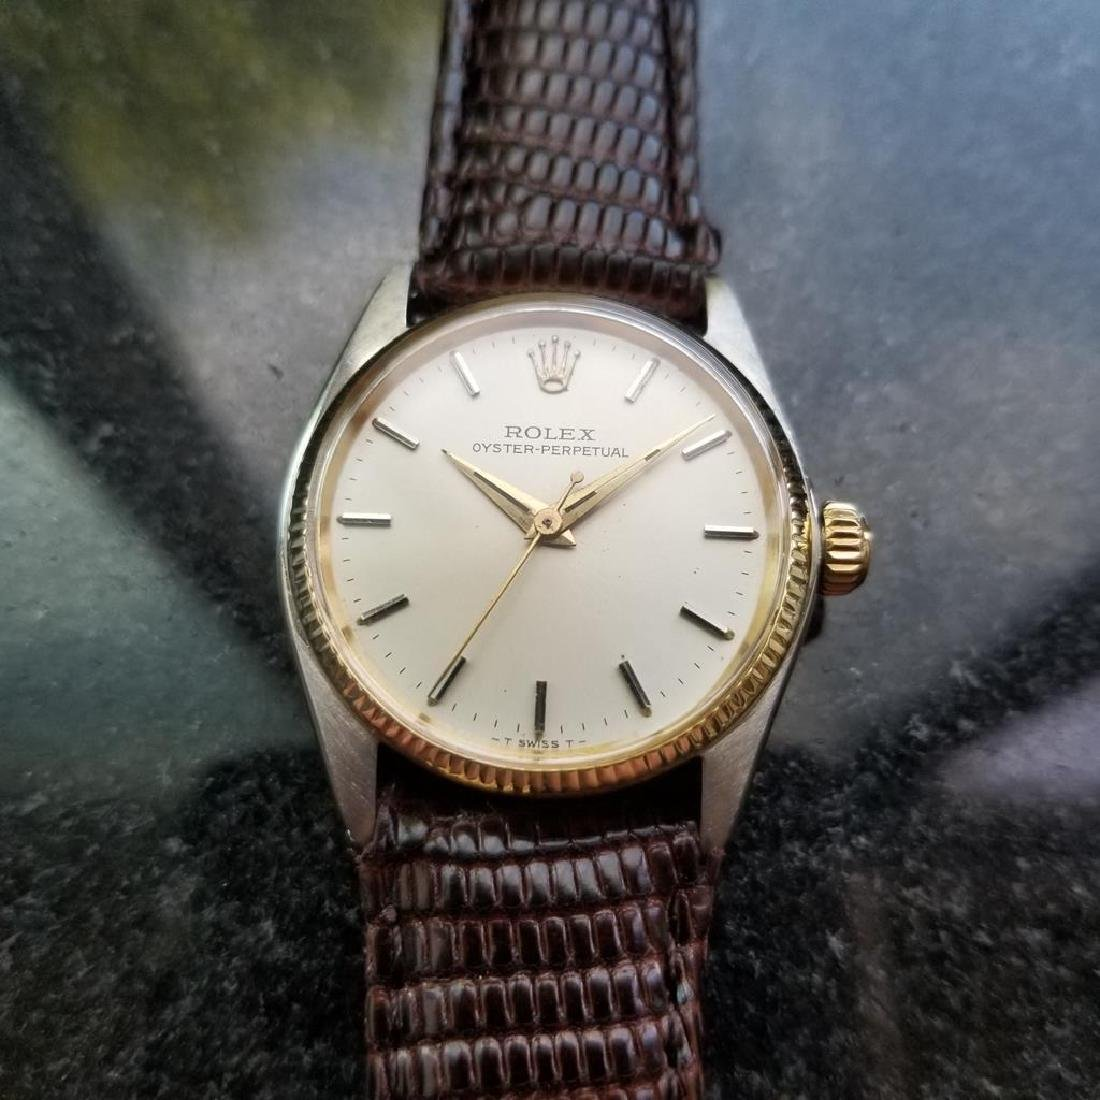 ROLEX Oyster Perpetual ref. 6551 31mm automatic 14k - 2